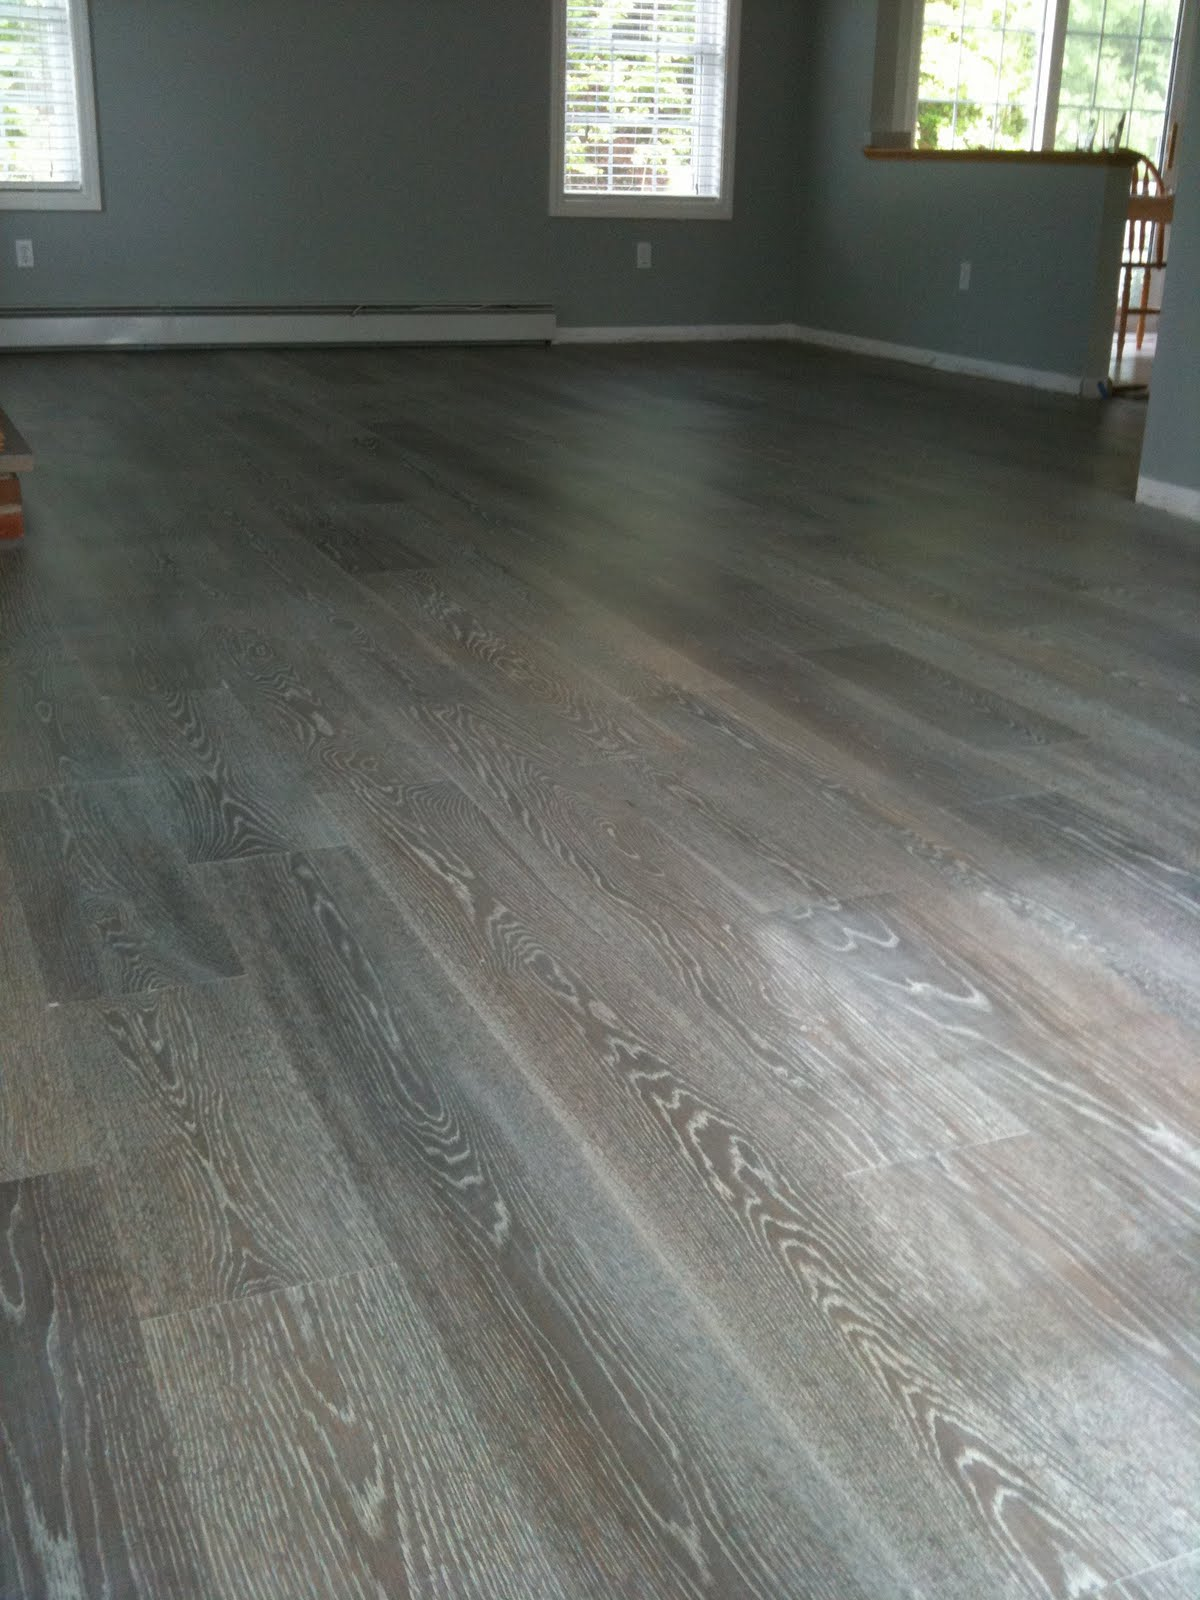 True wesson interior design project gray hardwood floors for Grey brown floor tiles